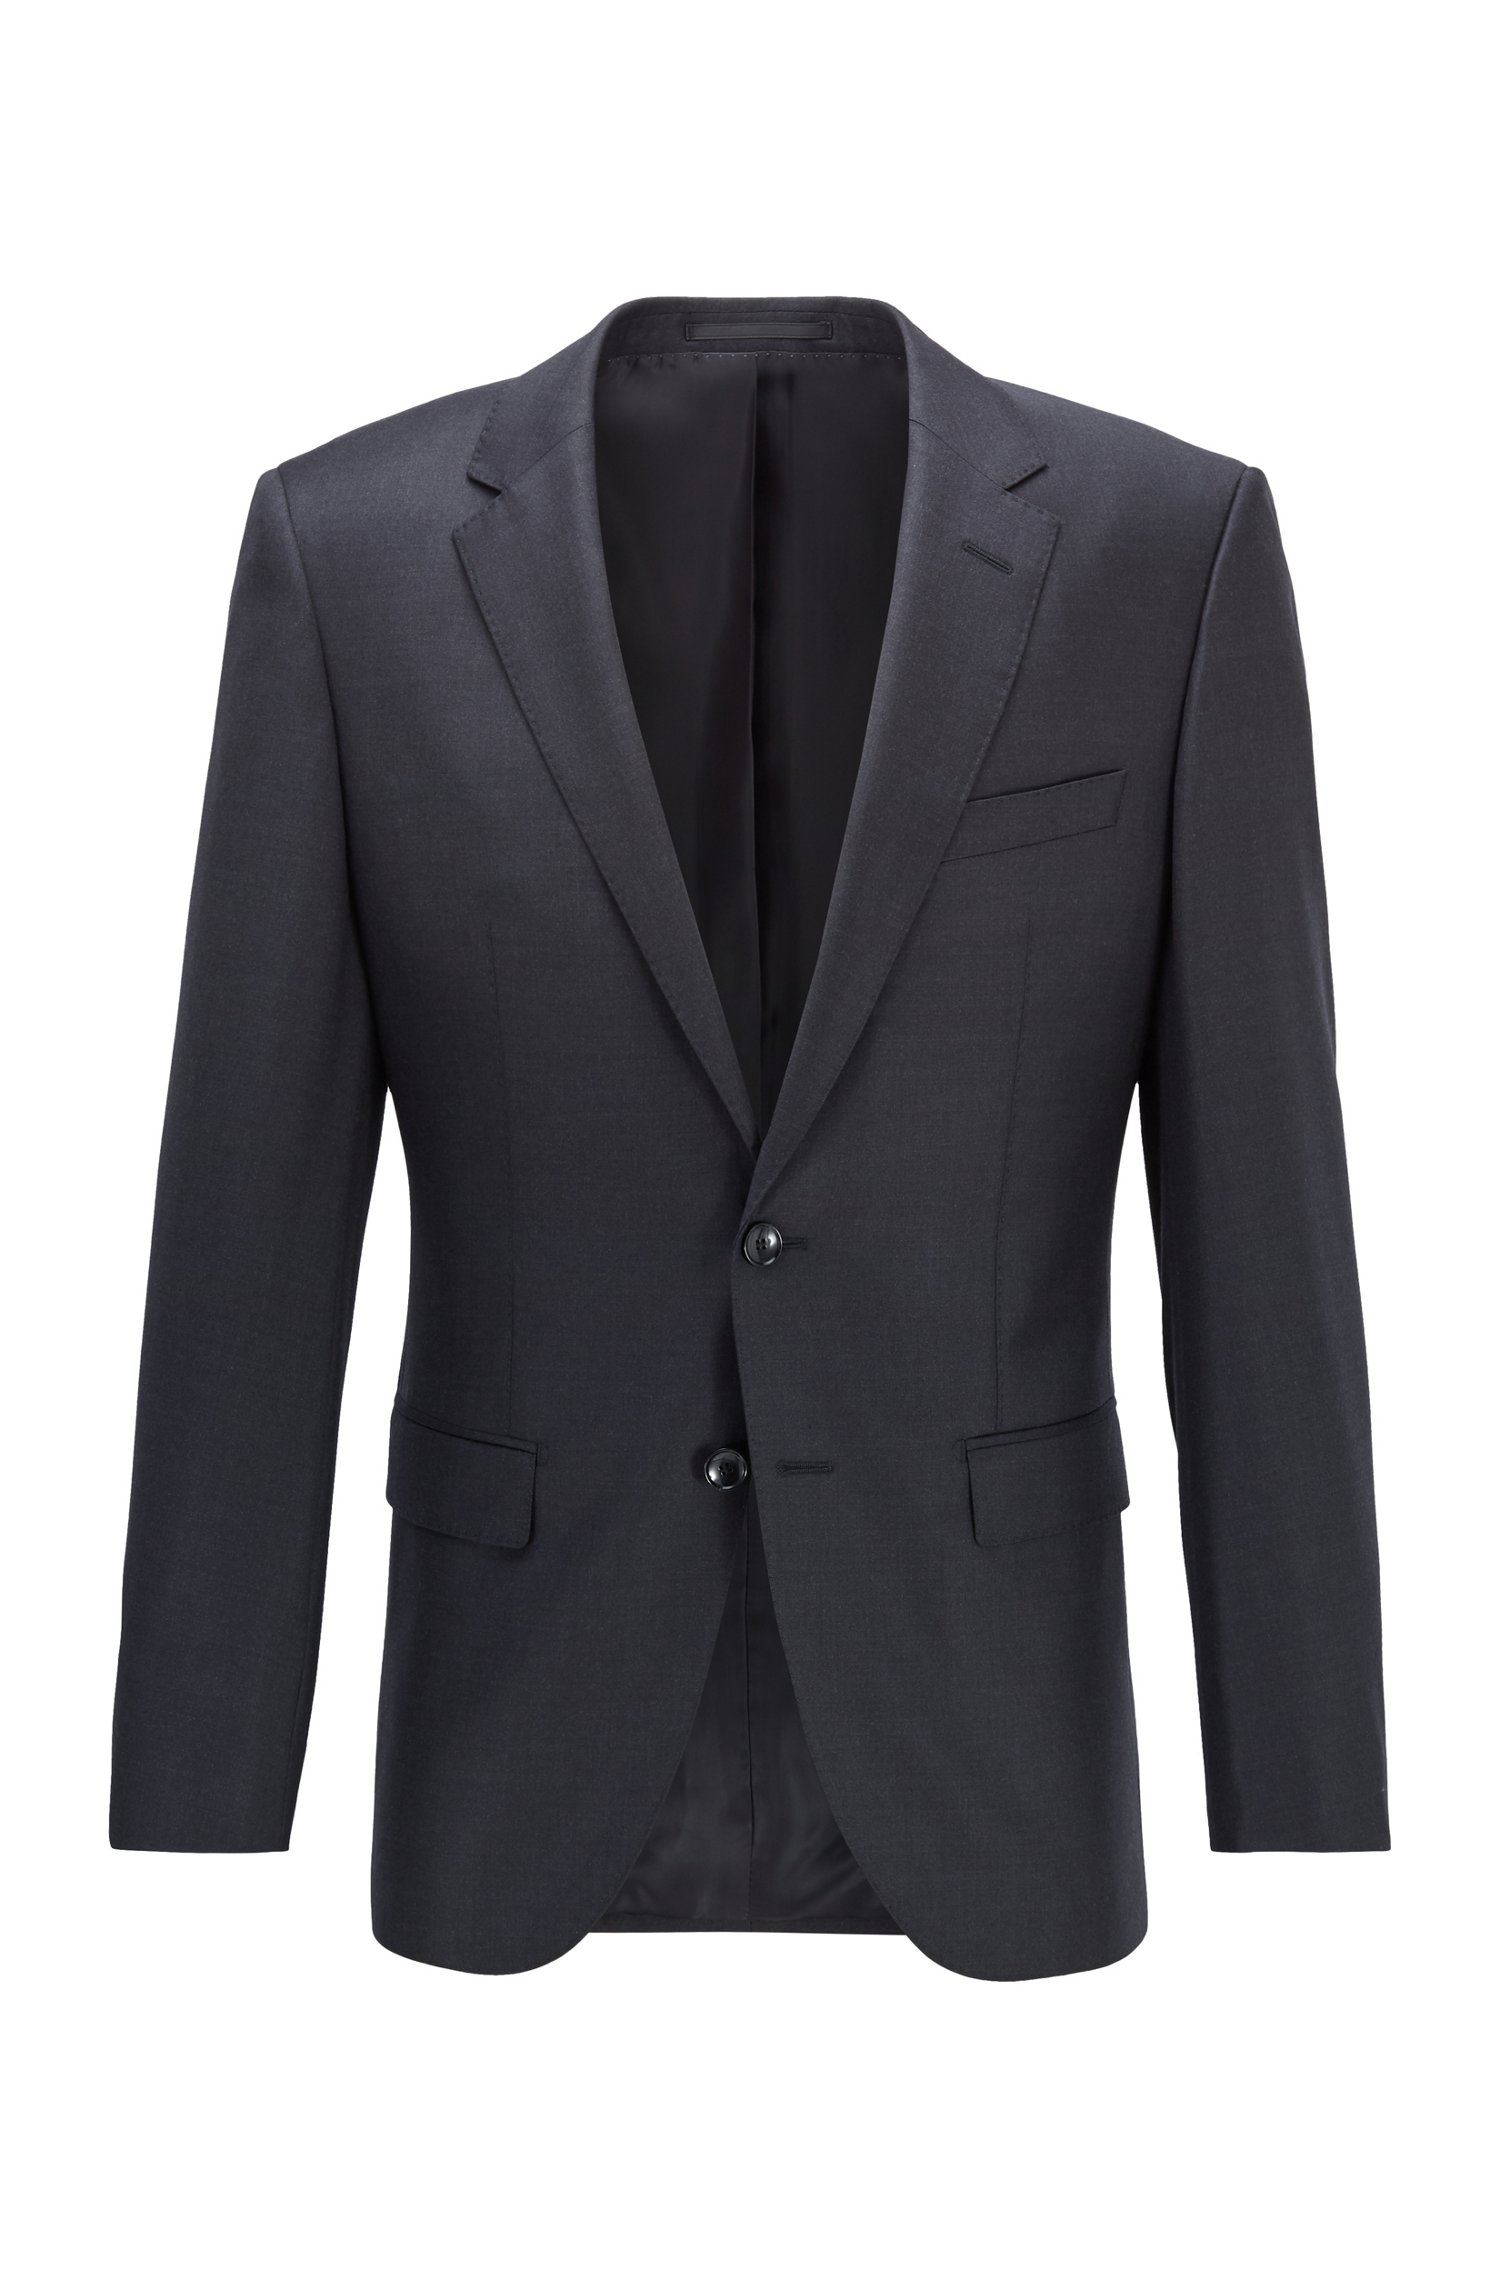 Slim-fit tailored jacket harvers - grey BOSS | Blazers | 50384765061